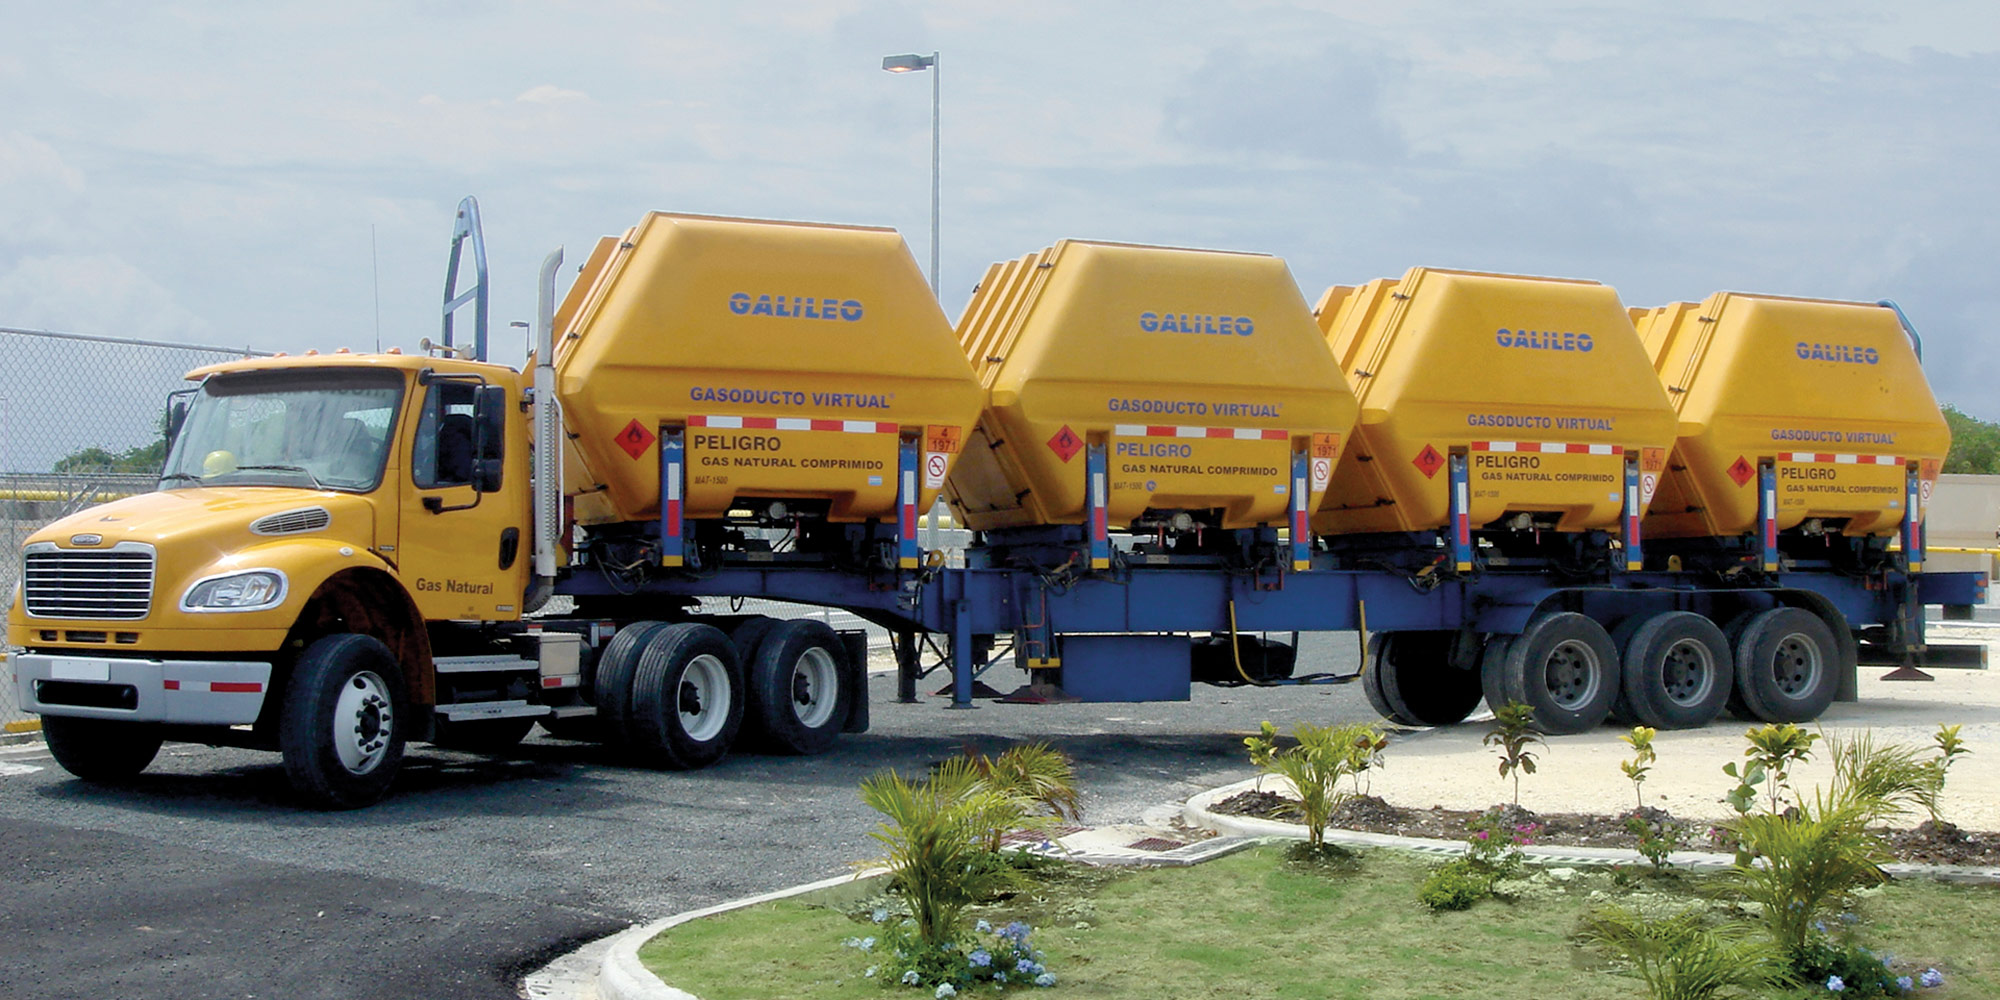 VST trailers for natural gas transport - Galileo Technologies